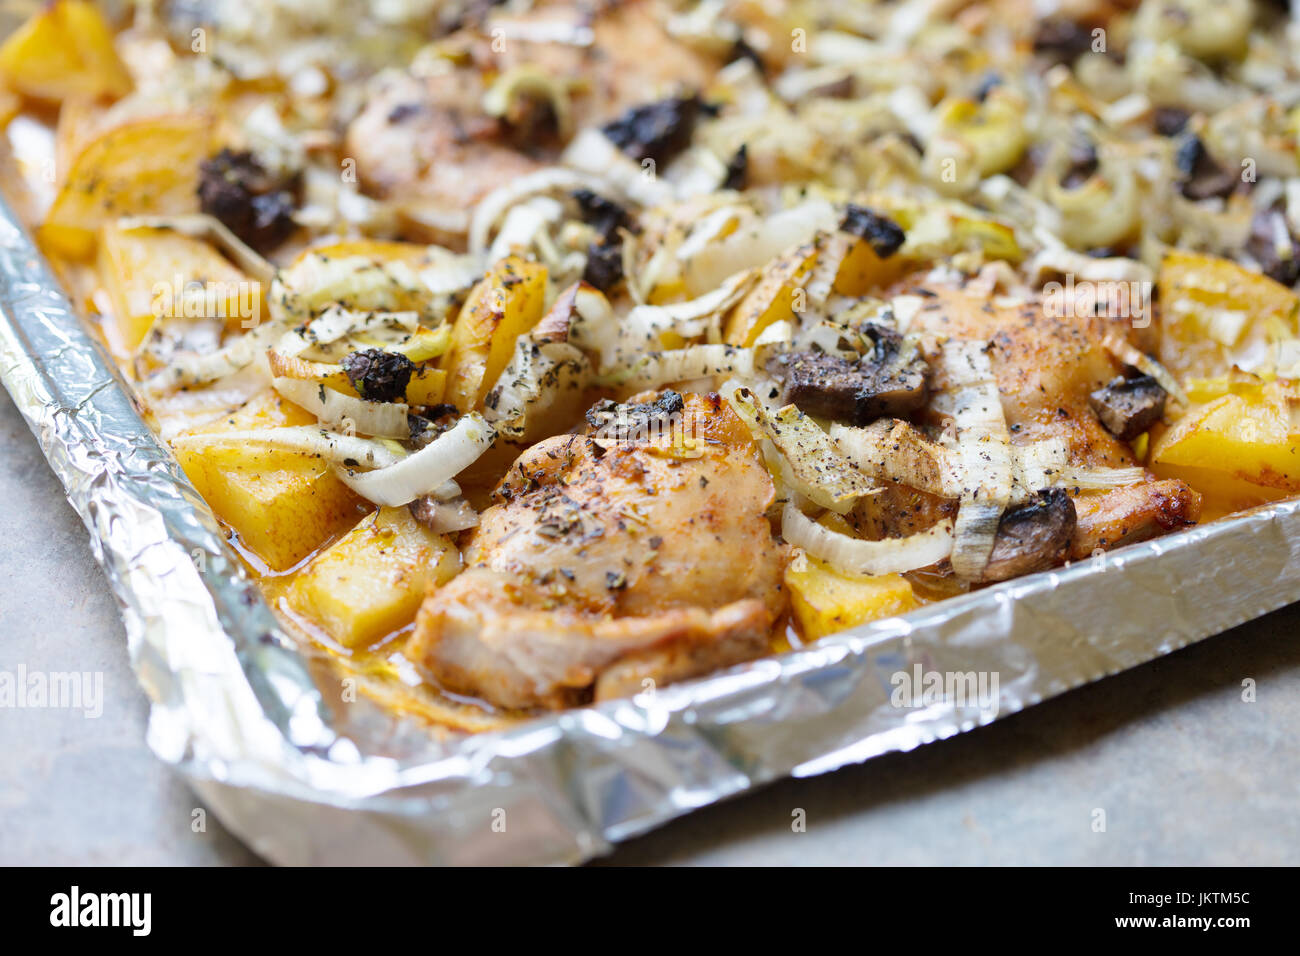 Oven roasted chicken thighs and yukon gold potatoes with leeks and herbs on a baking sheet lined with aluminum foil - Stock Image